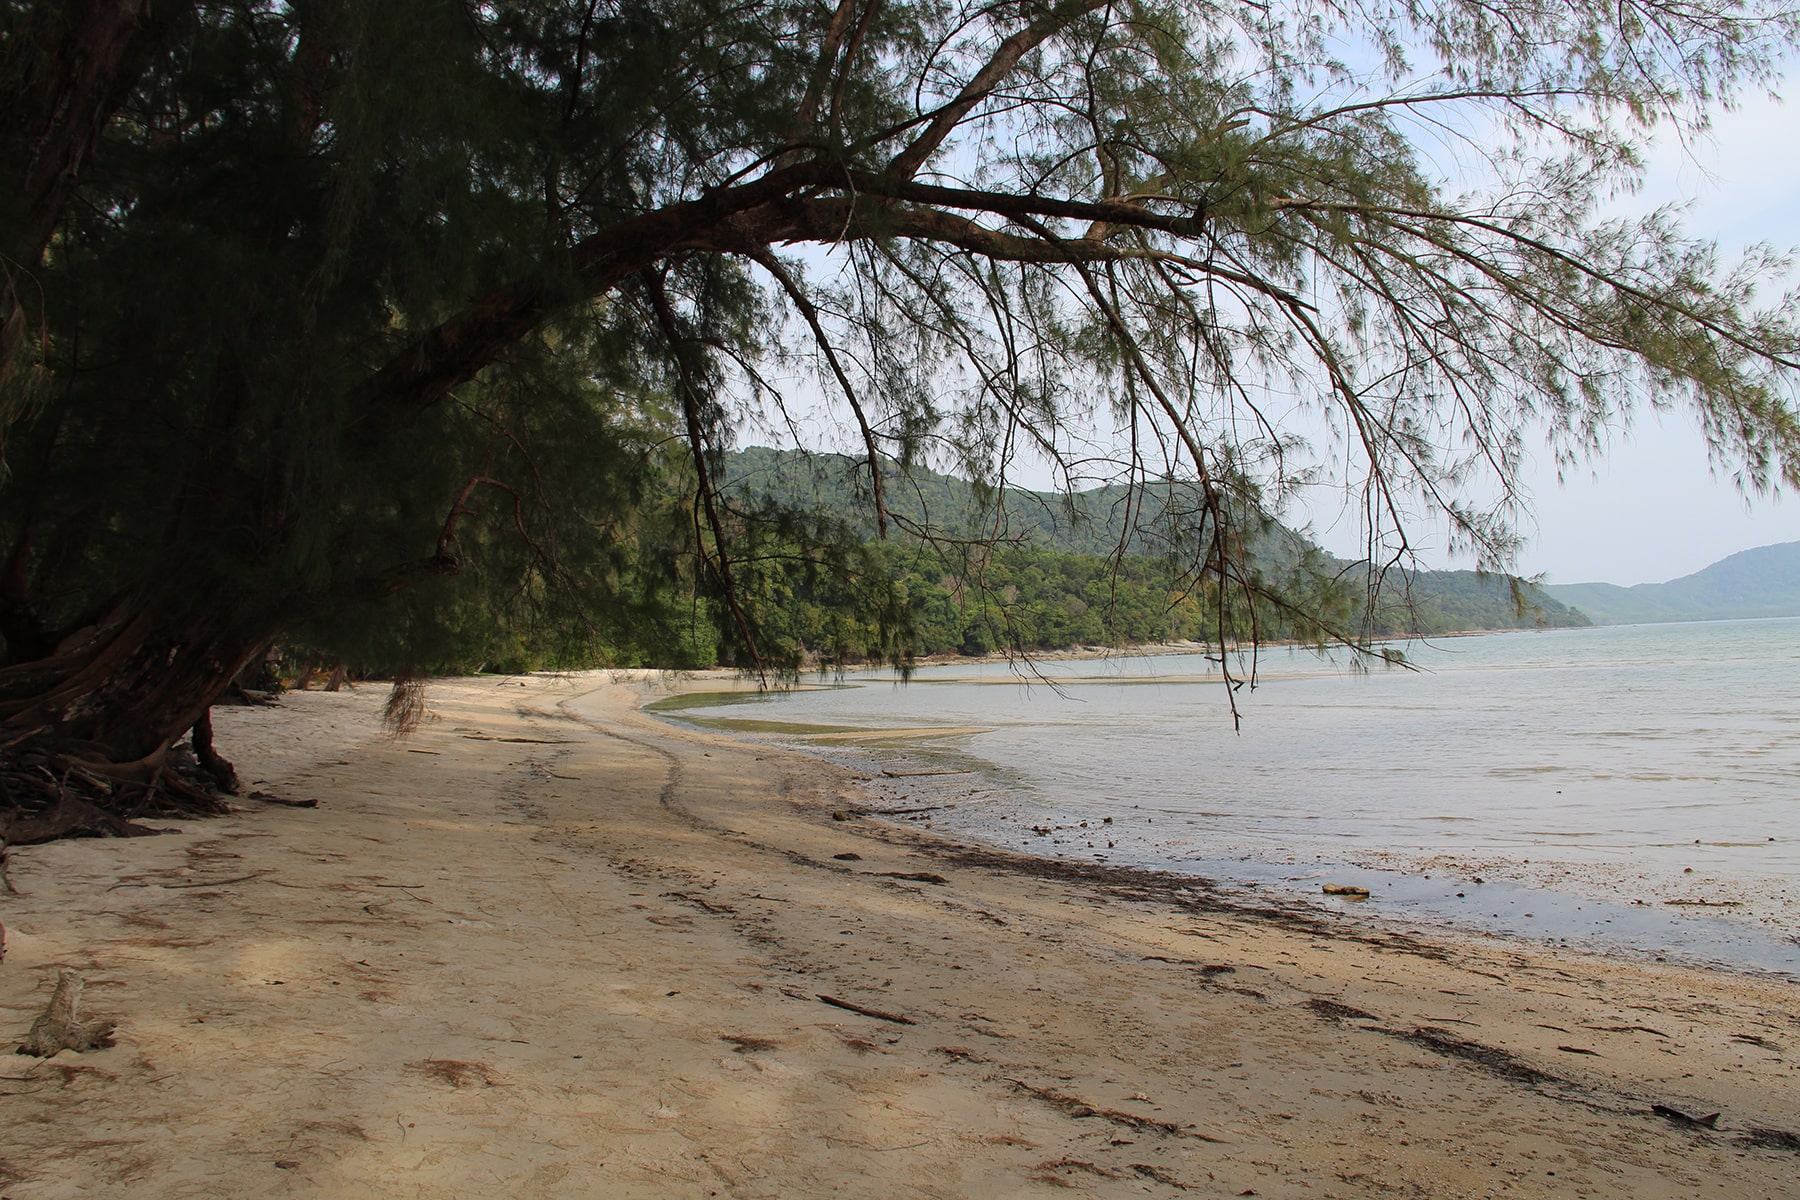 Khlong Son beach in Koh Yao Yai with trees